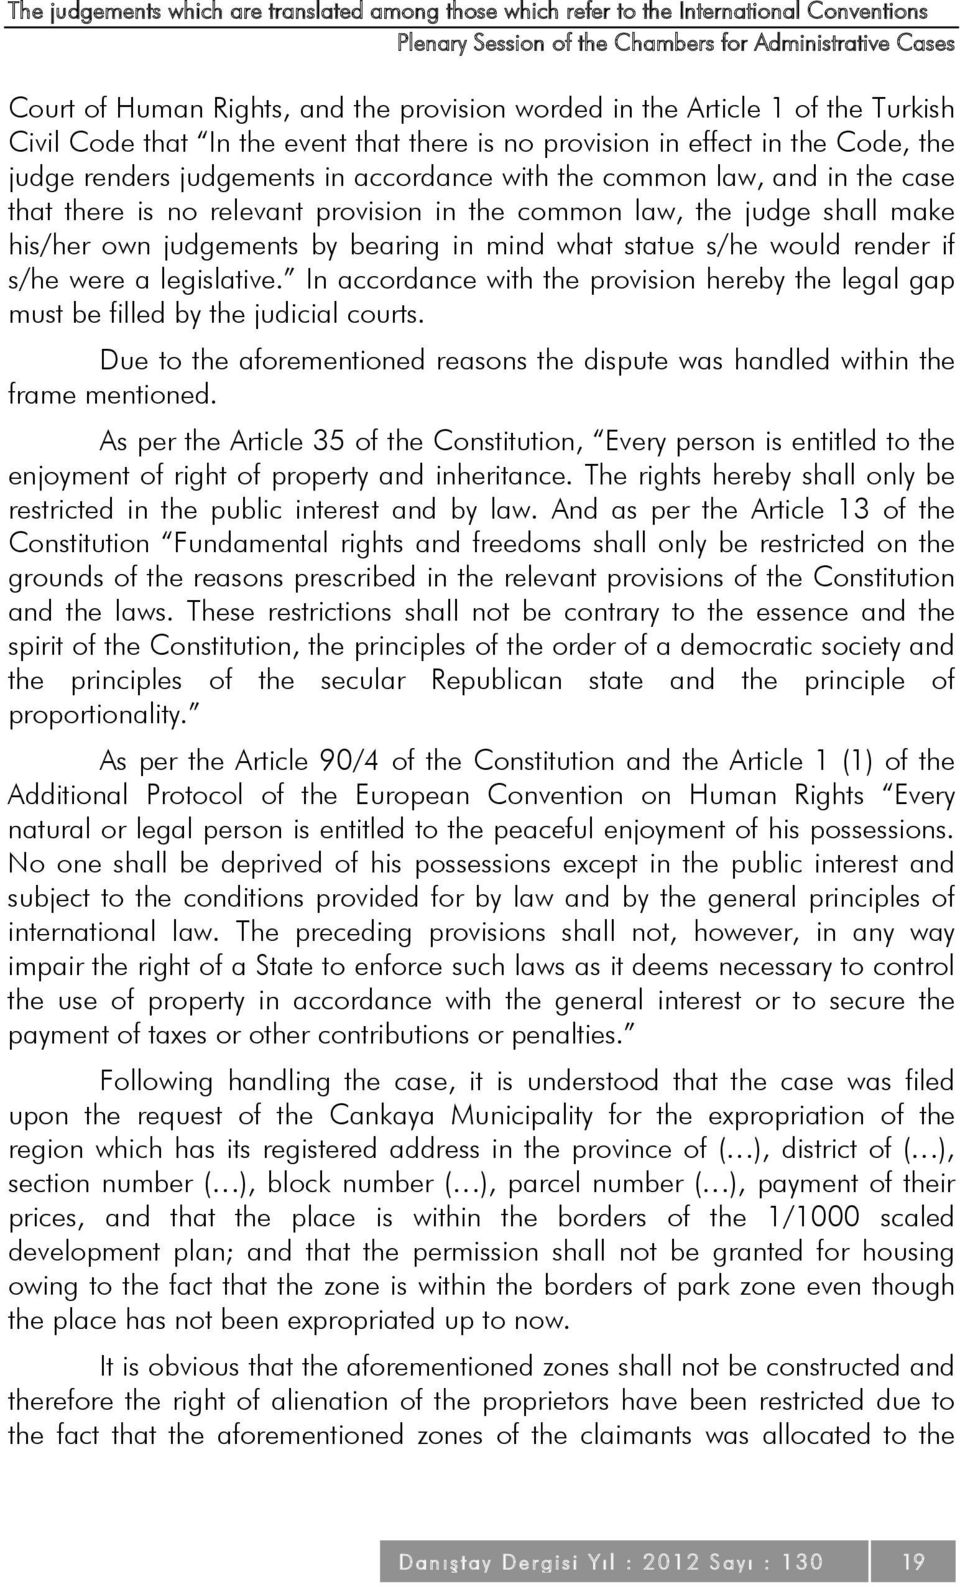 there is no relevant provision in the common law, the judge shall make his/her own judgements by bearing in mind what statue s/he would render if s/he were a legislative.